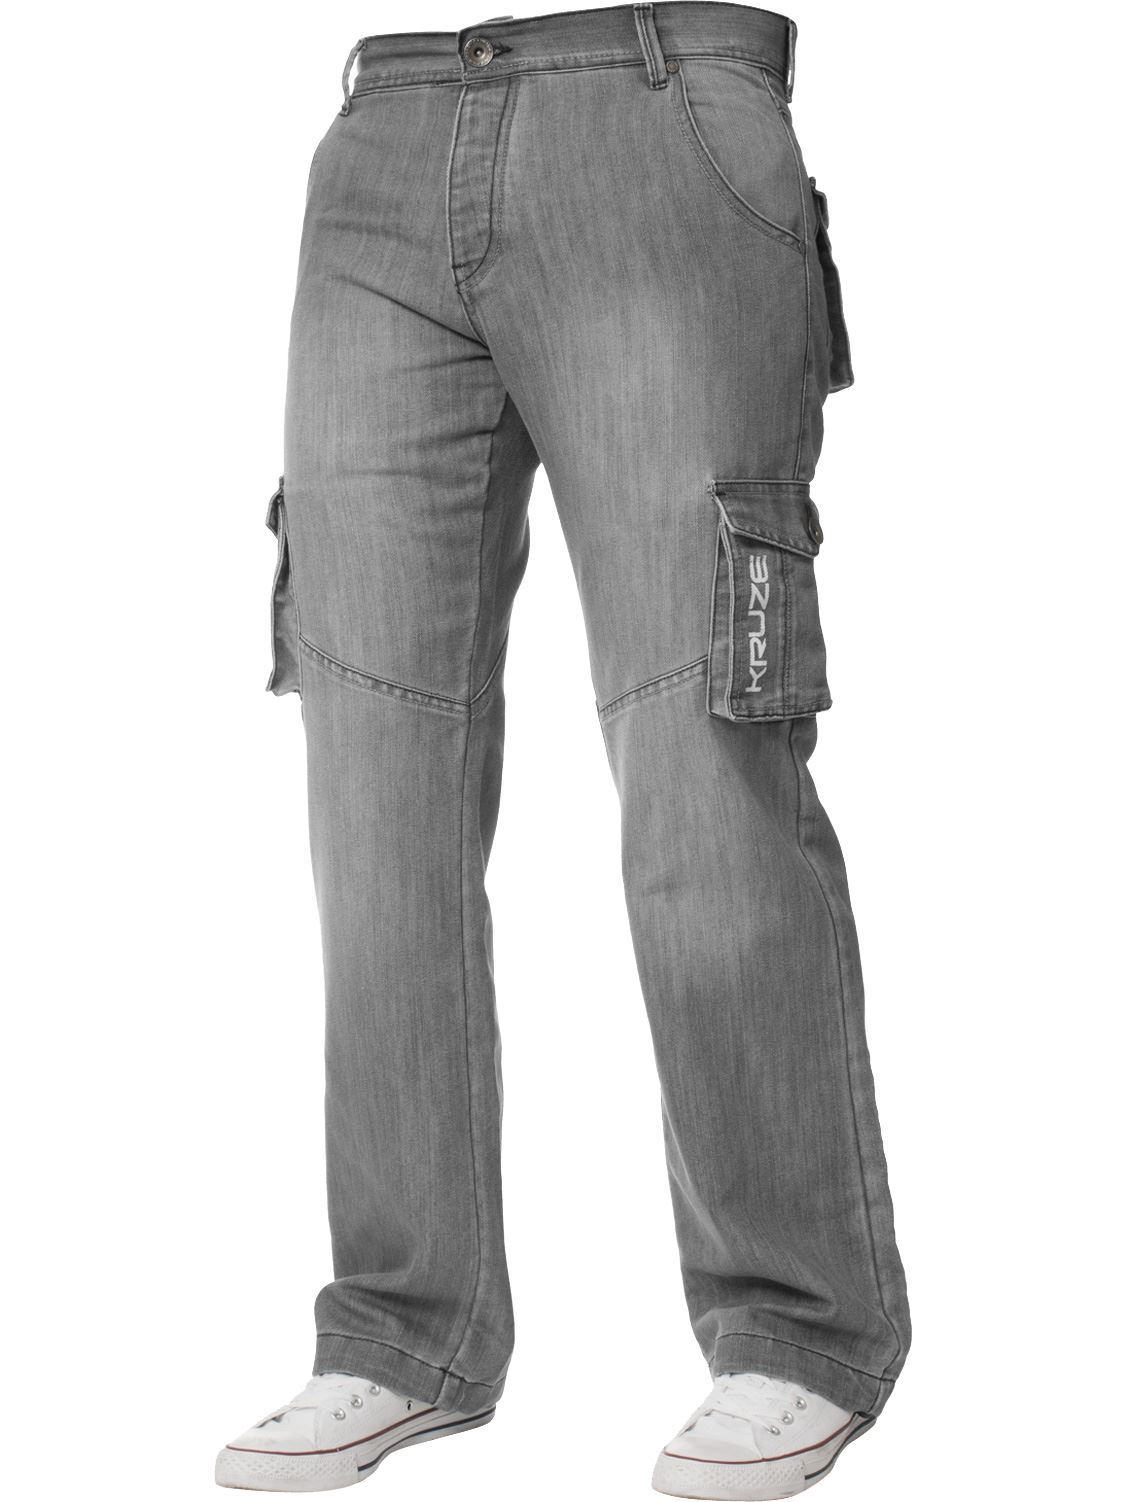 Kruze-Mens-Cargo-Combat-Jeans-Casual-Work-Denim-Pants-Big-Tall-All-Waist-Sizes thumbnail 28